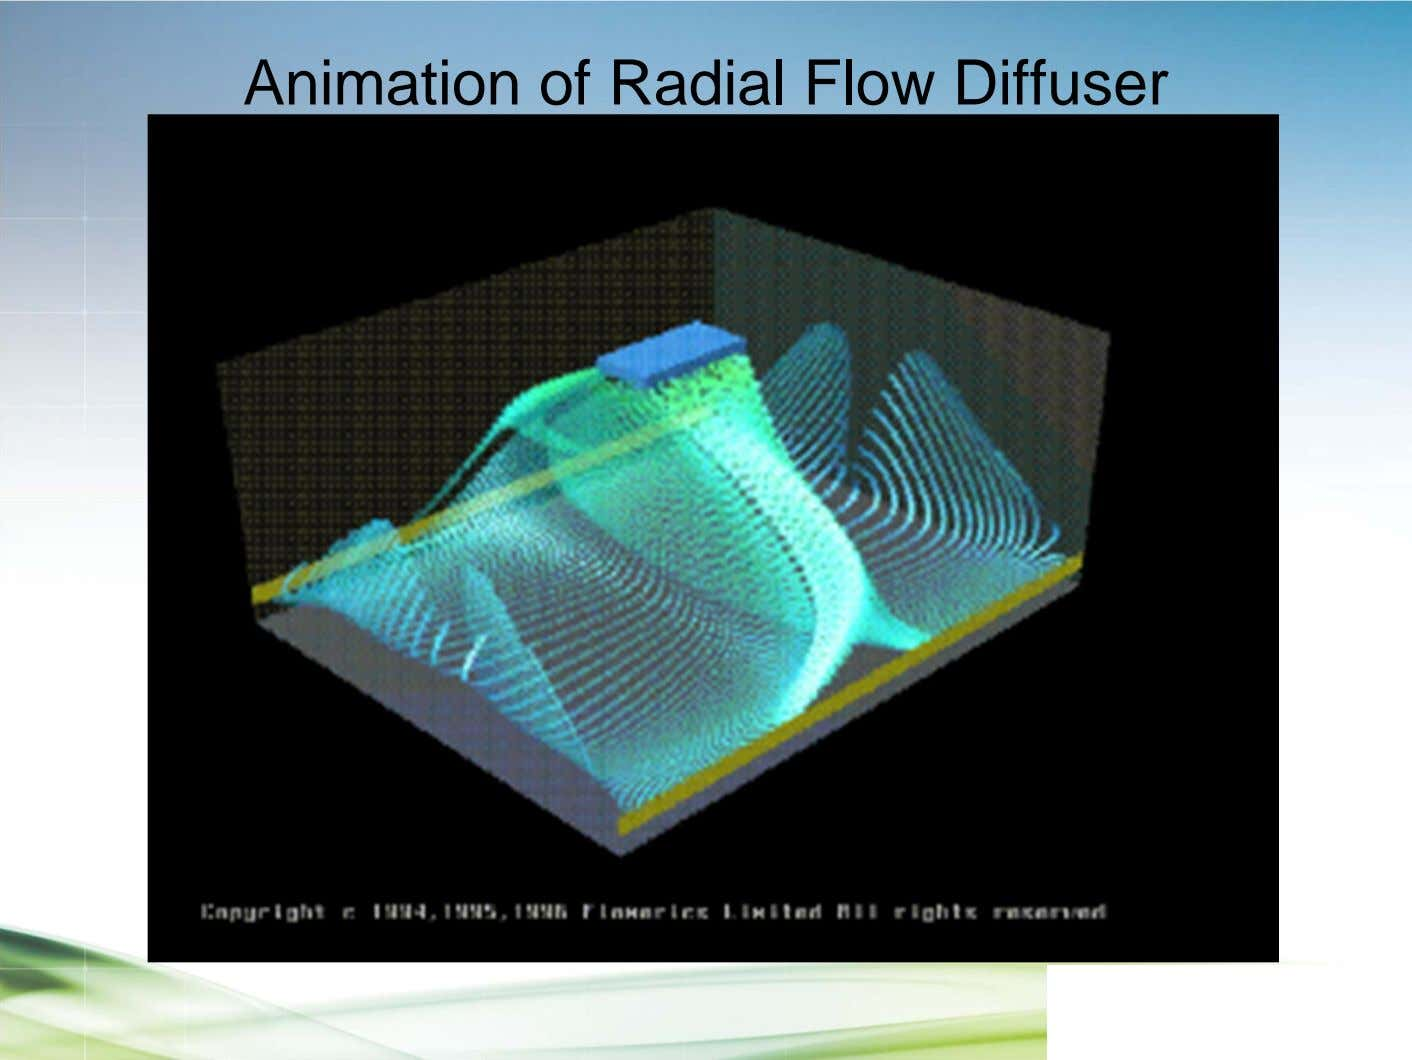 Animation of Radial Flow Diffuser